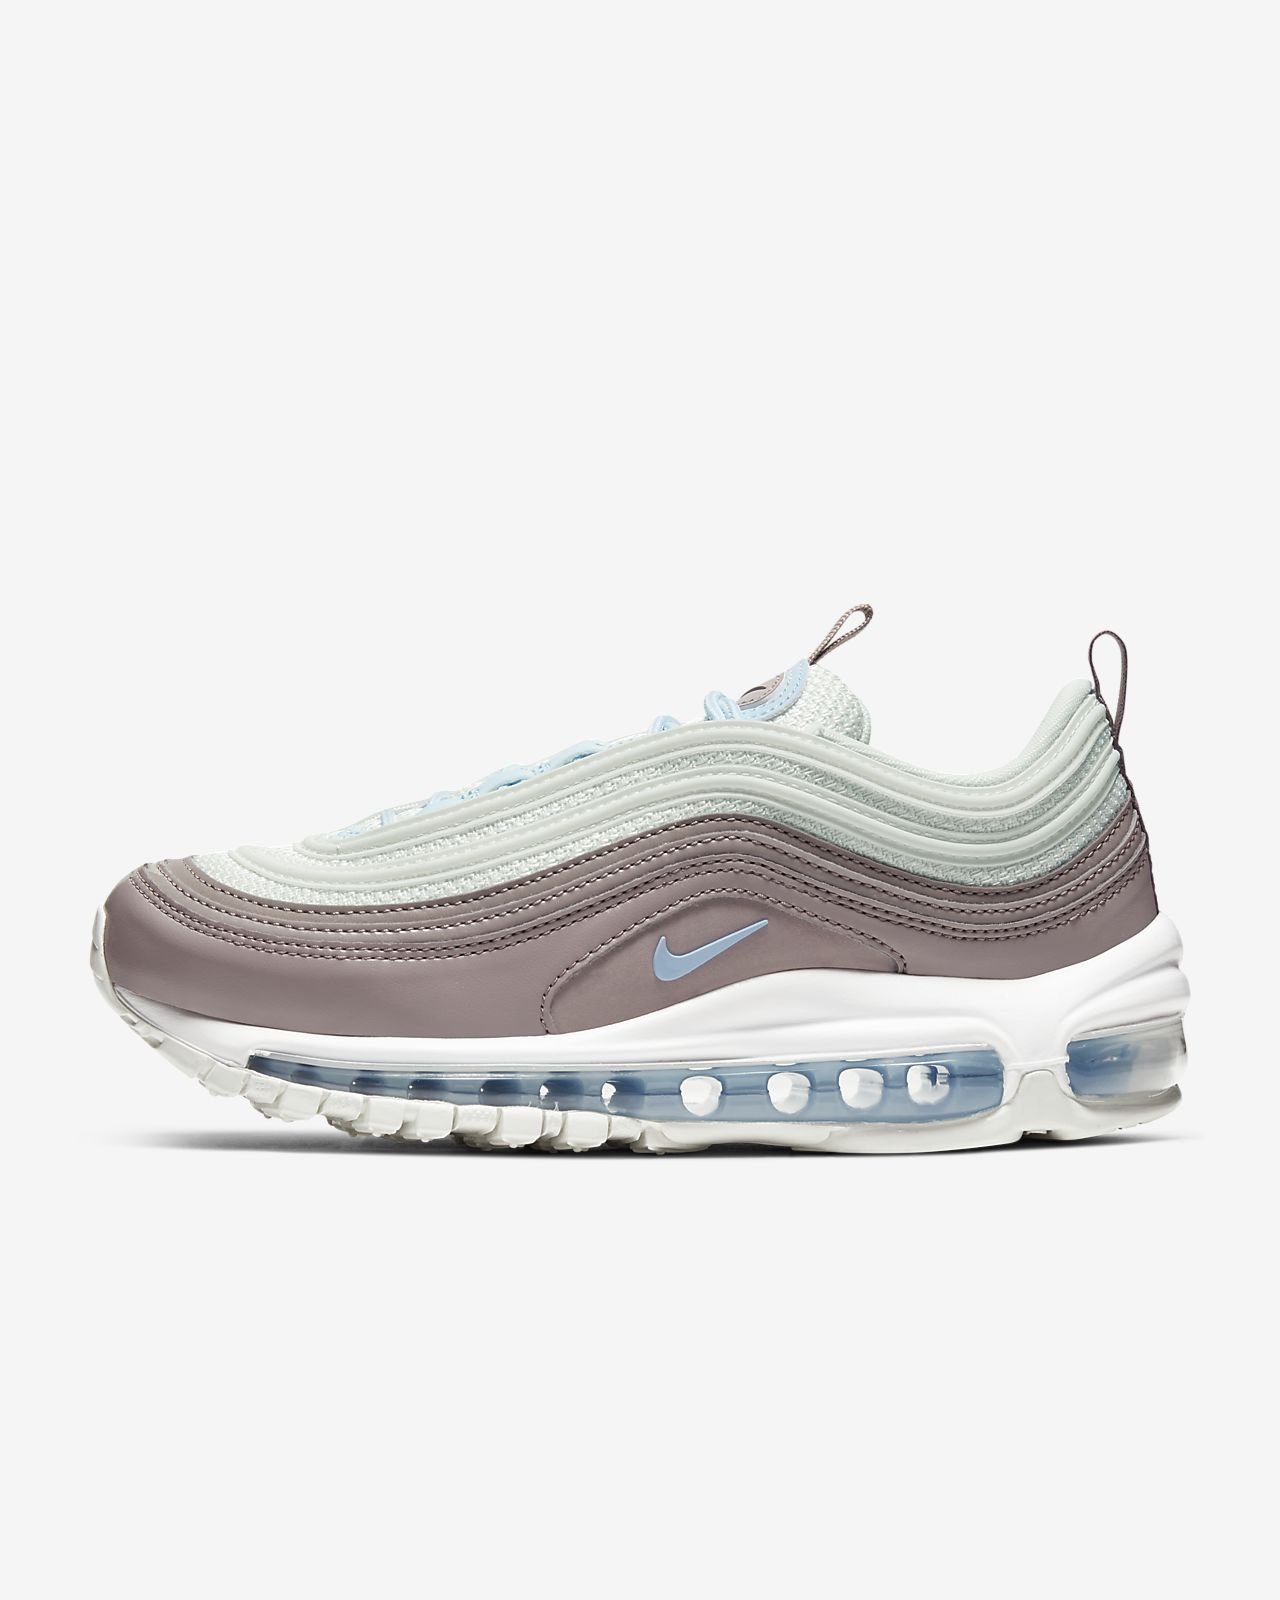 Nike Drops Air Max 97 in Neutral Desert Sand HYPEBAE